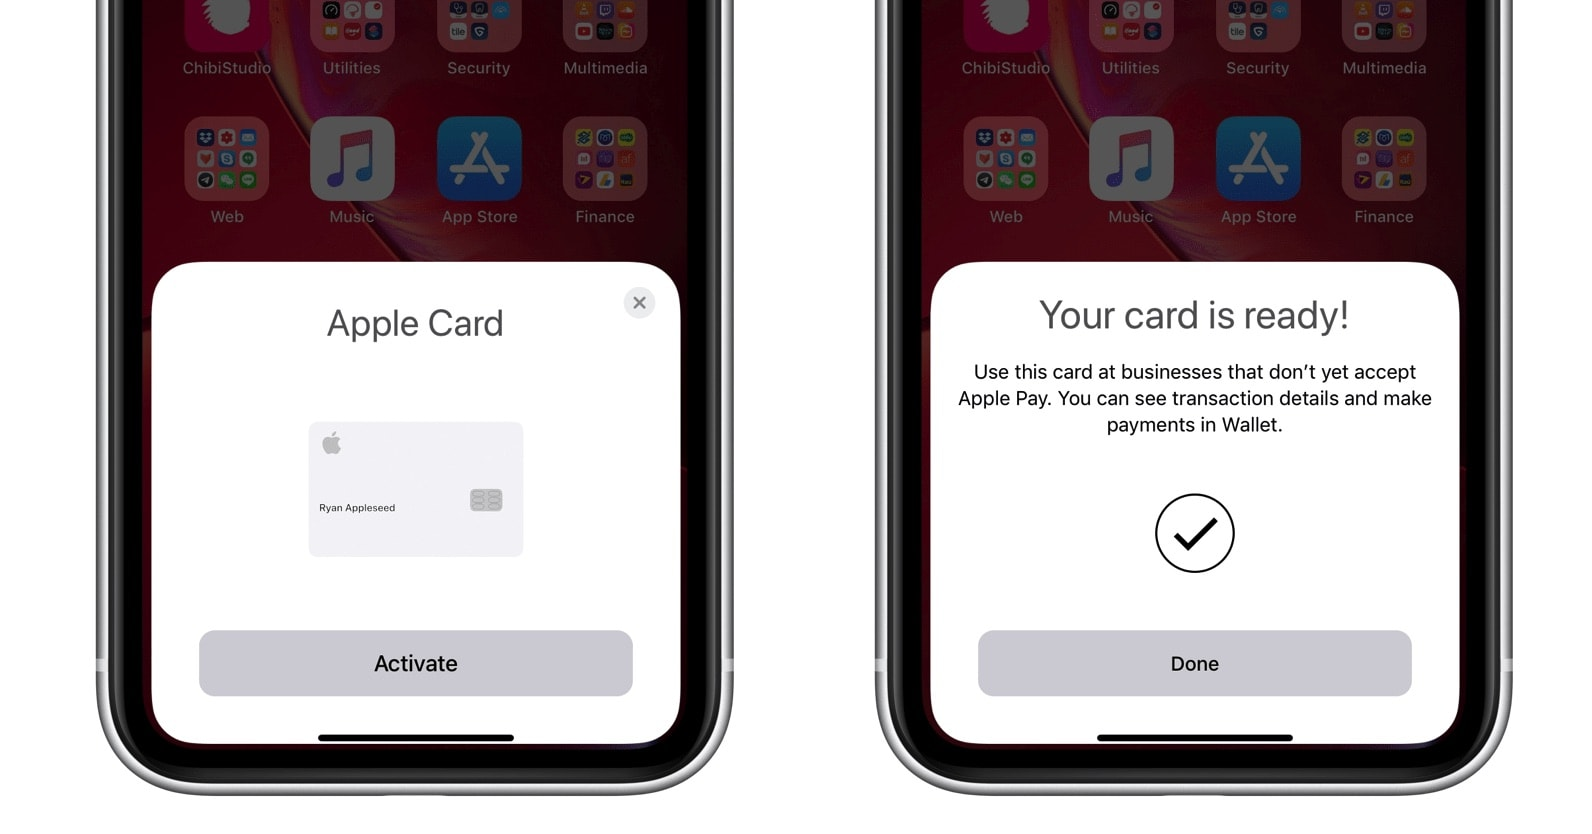 Apple Card activation 2